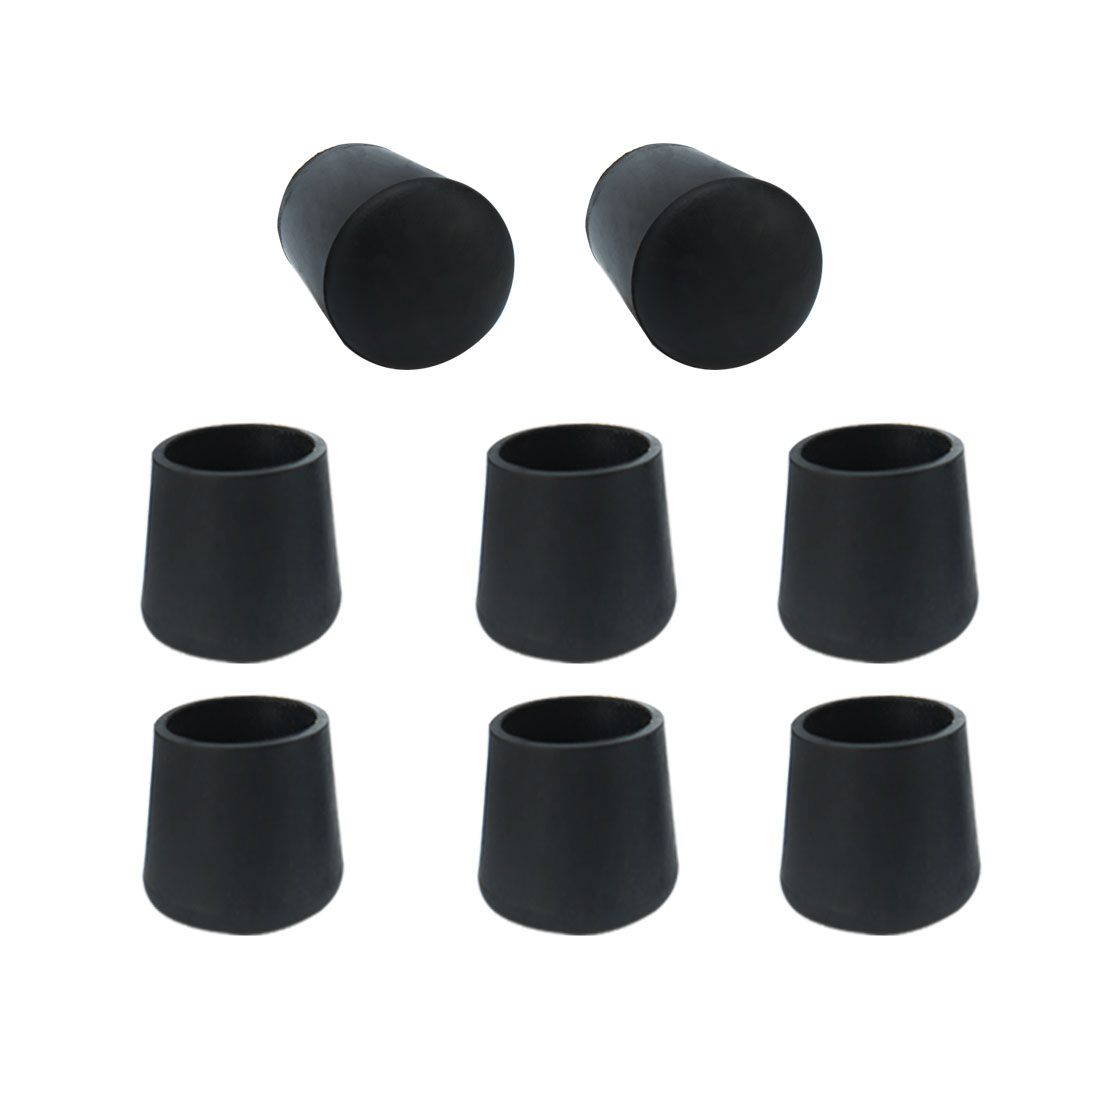 Furniture Table Desk Foot Leg Rubber Cylinder Protectors Cover 21mm Dia 8pcs